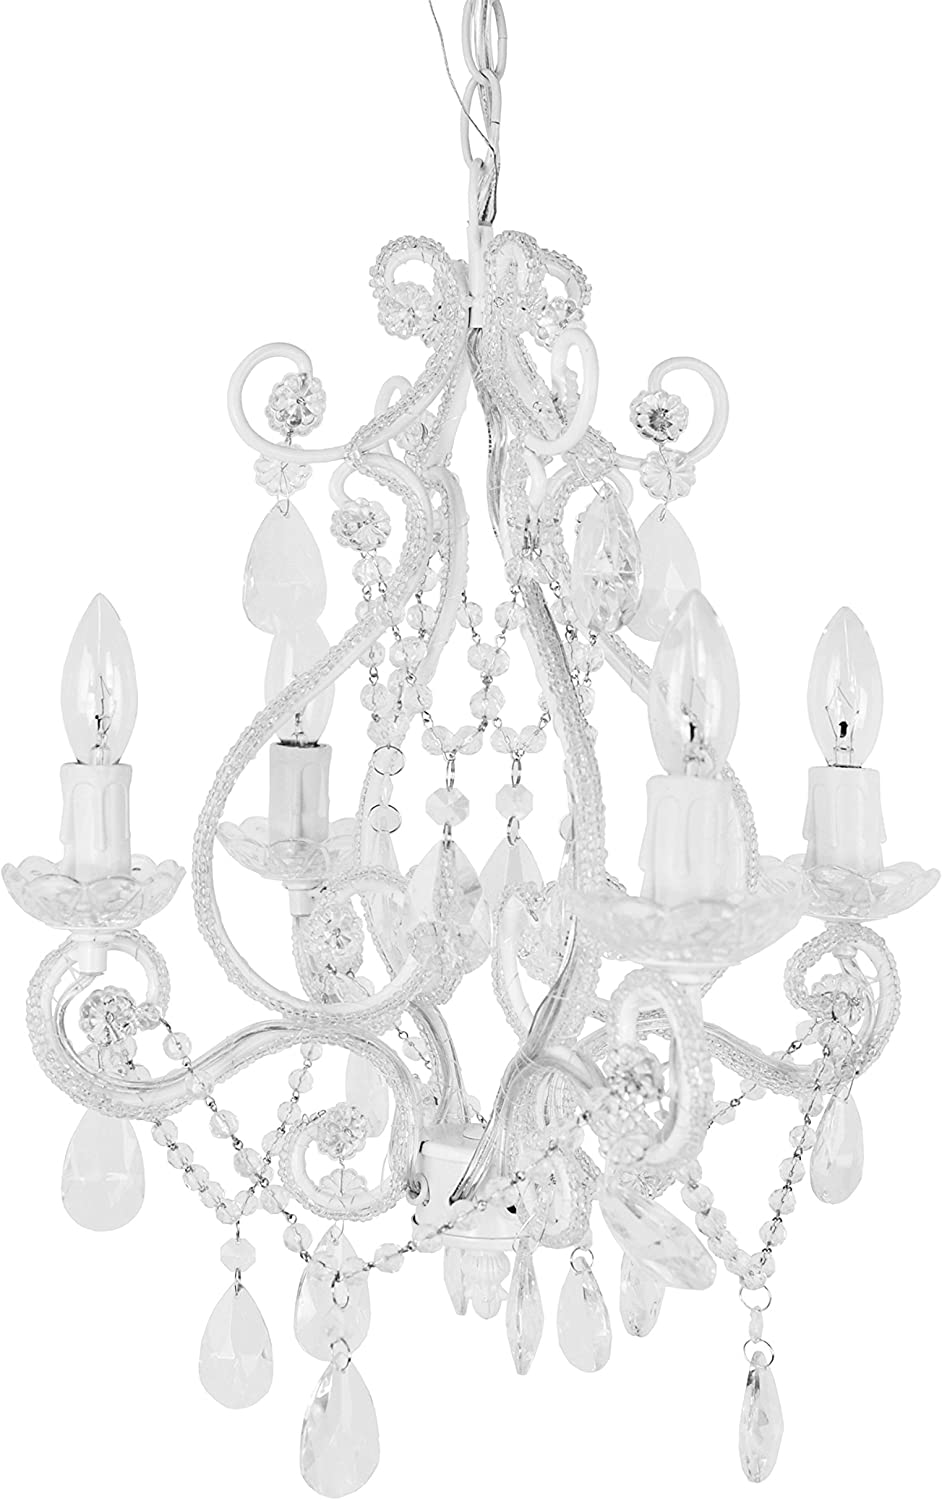 Top 10 Best Chandelier For Baby Girl Nursery (2020 Reviews & Buying Guide) 2